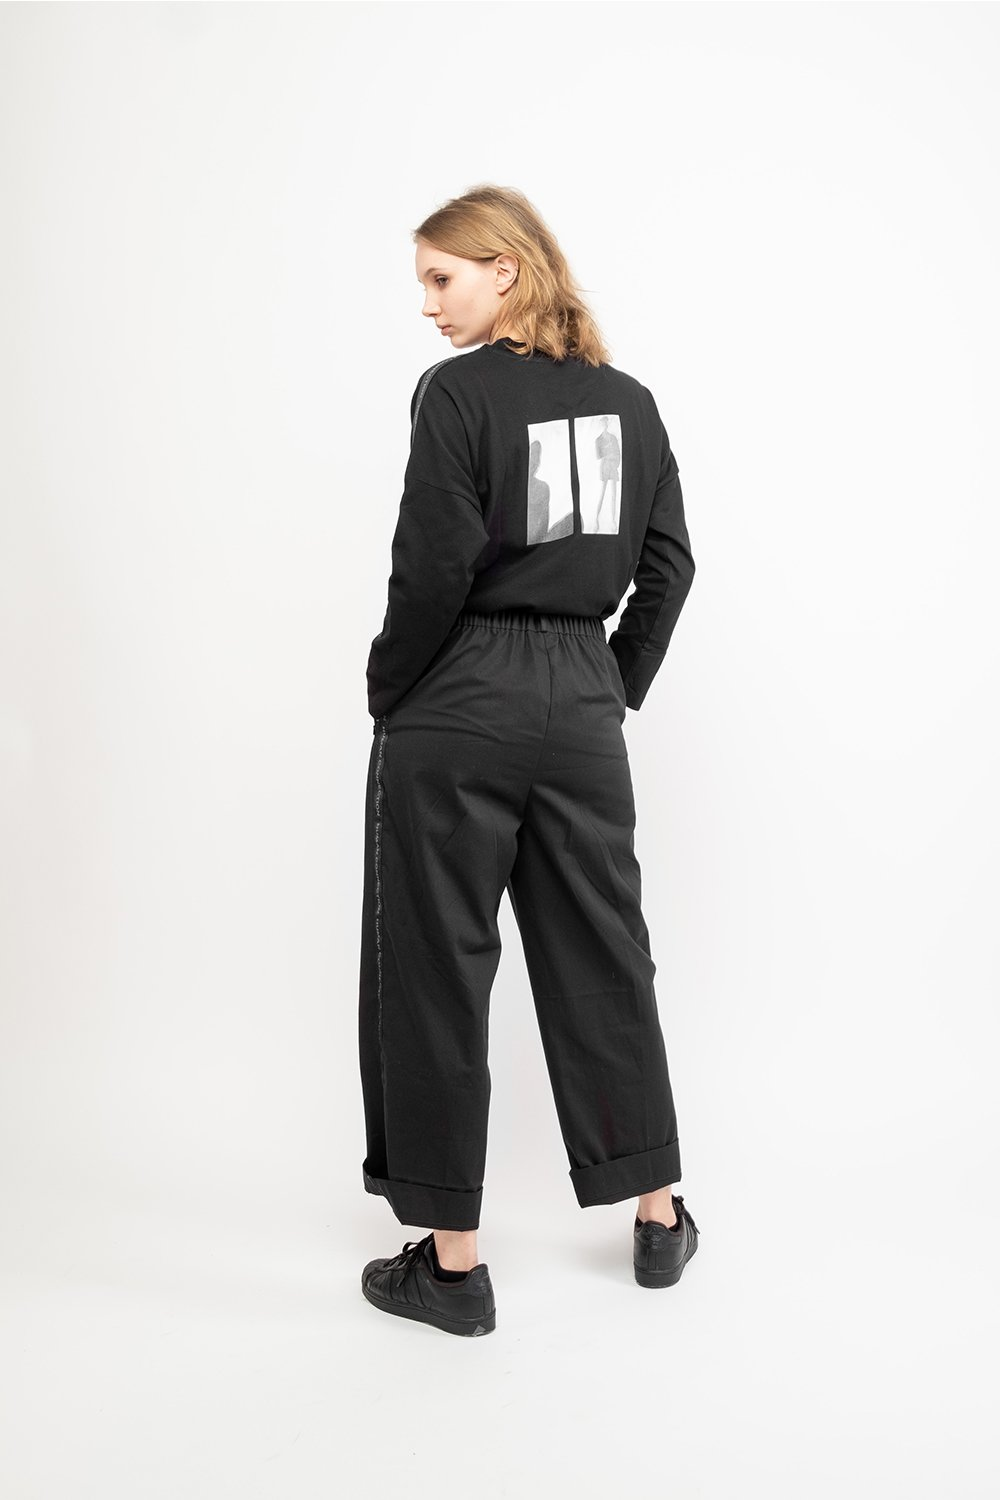 Human Connection Black Pants - BISKIT